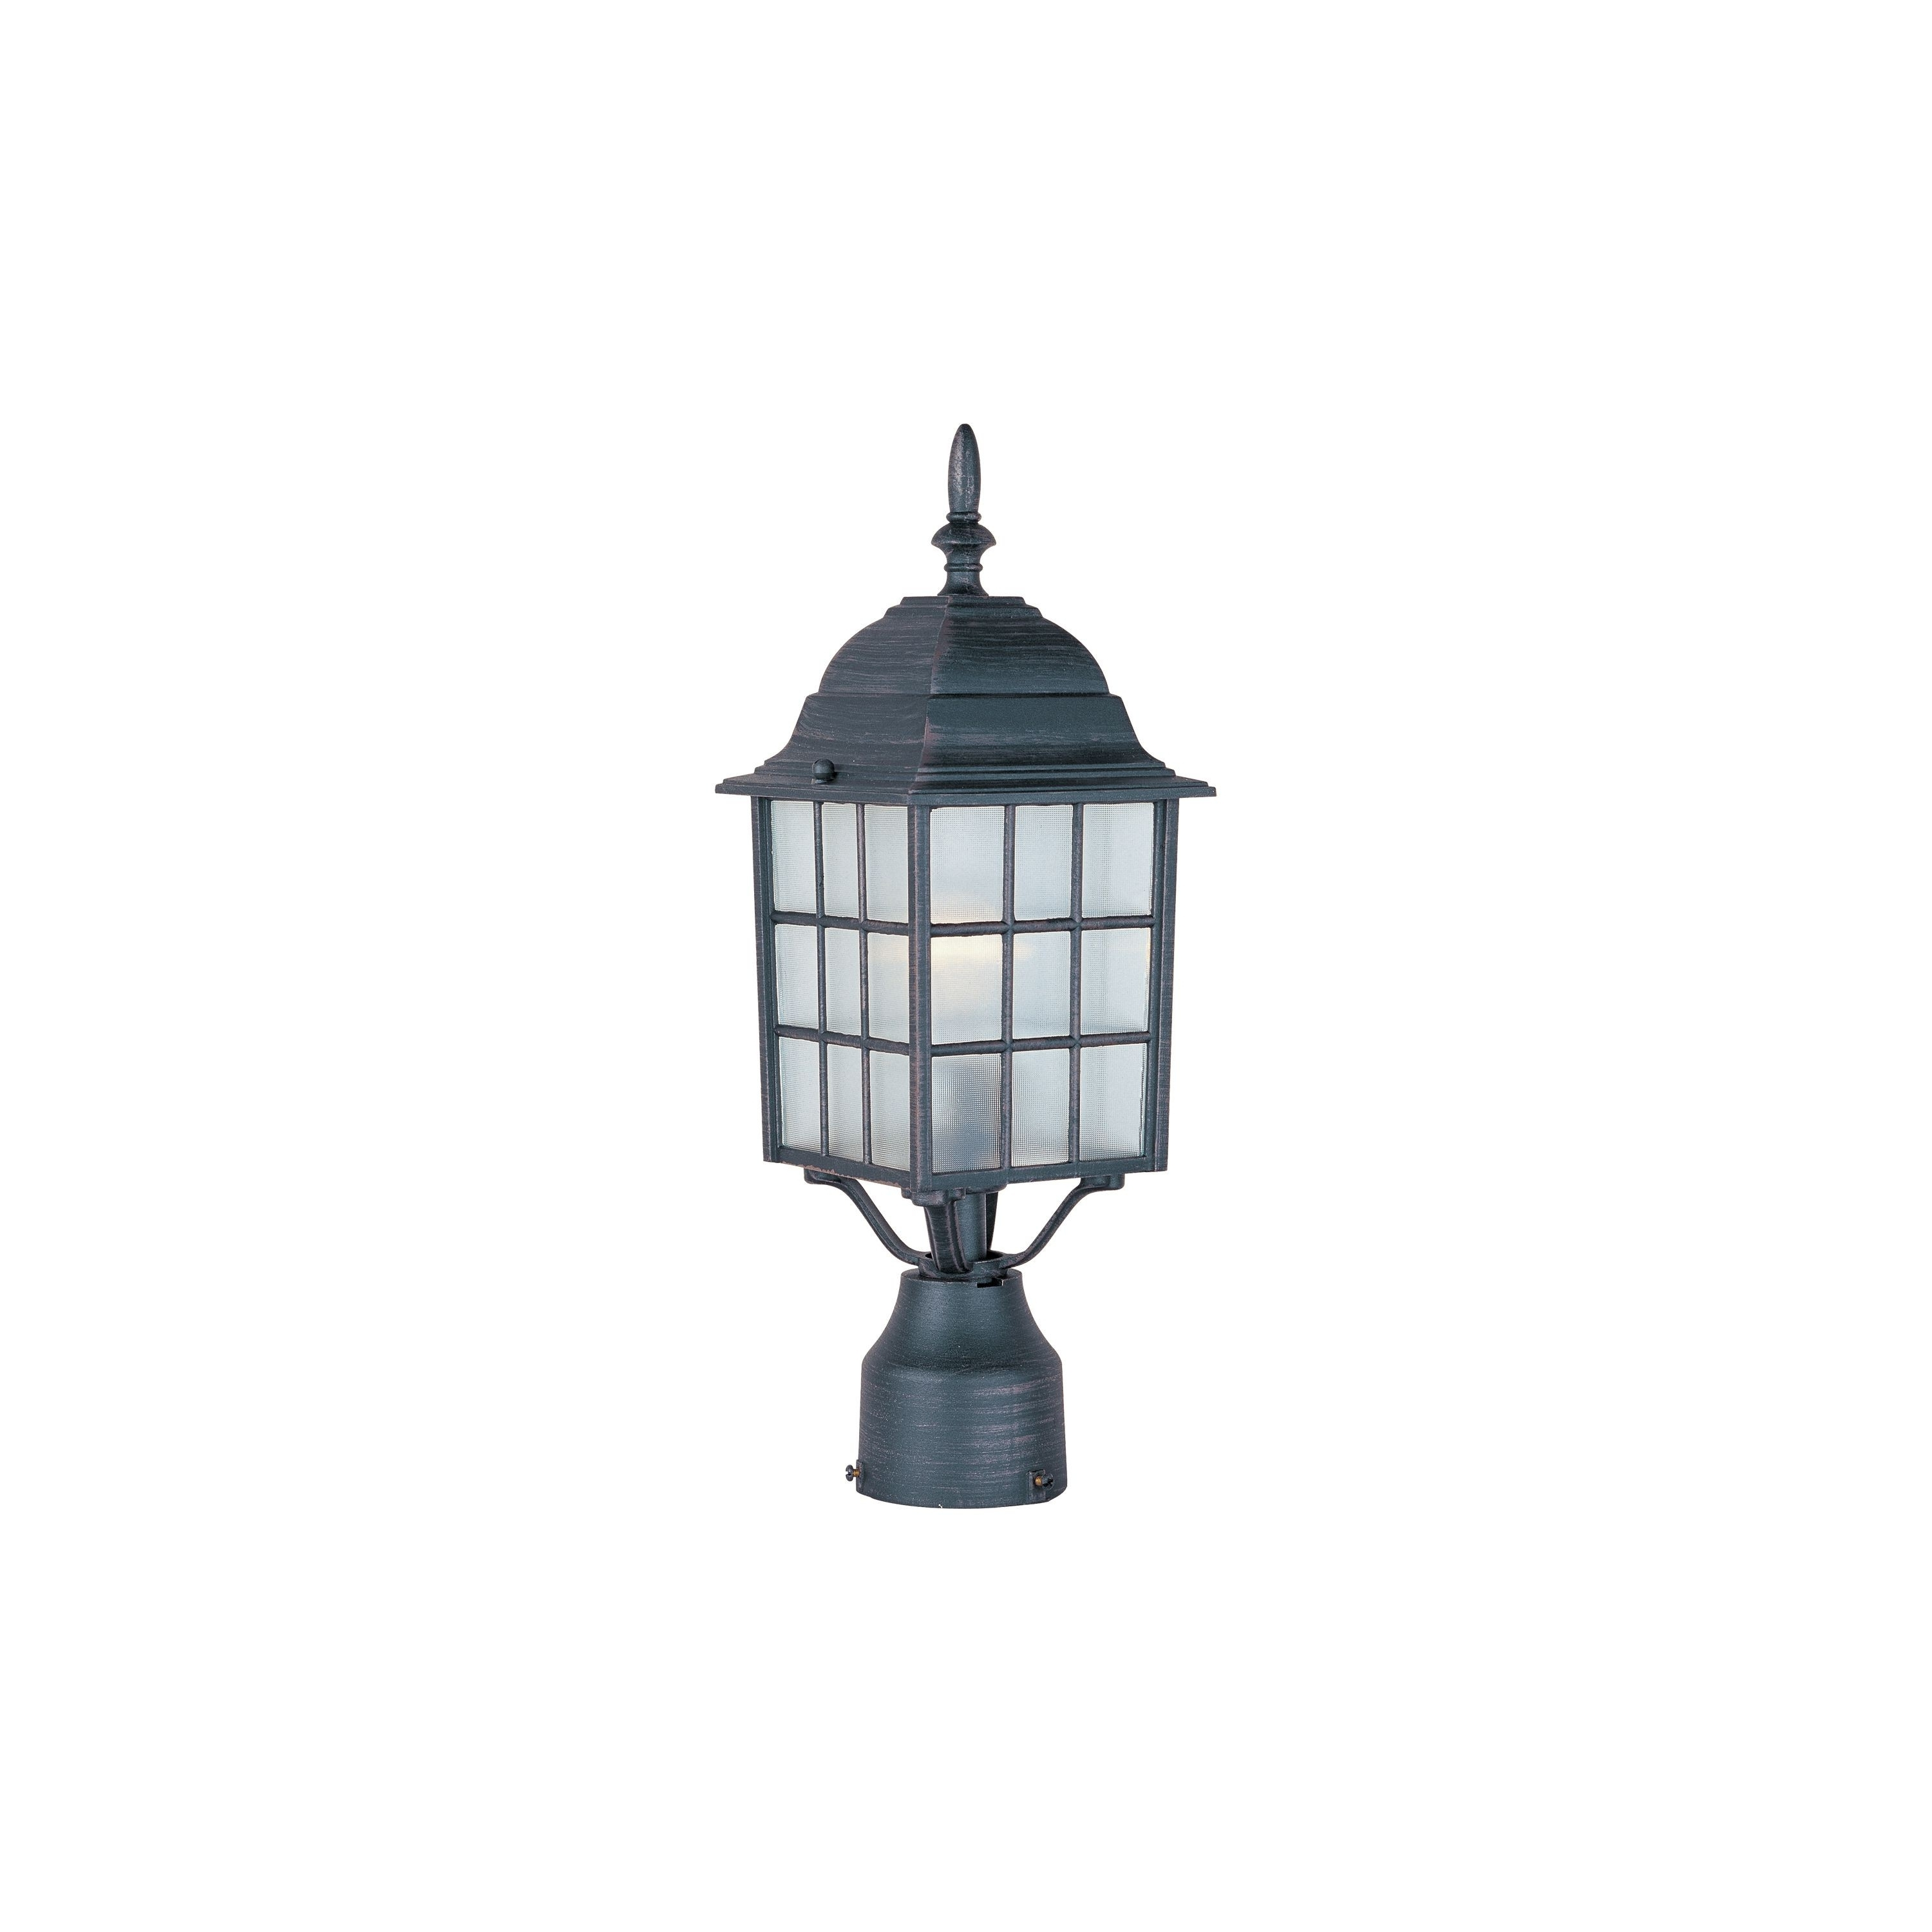 Fashionable Outdoor Pole Lanterns Inside Home Lighting : Splendid Outdoor Pole Lights Sale , Outdoor Light (View 10 of 20)